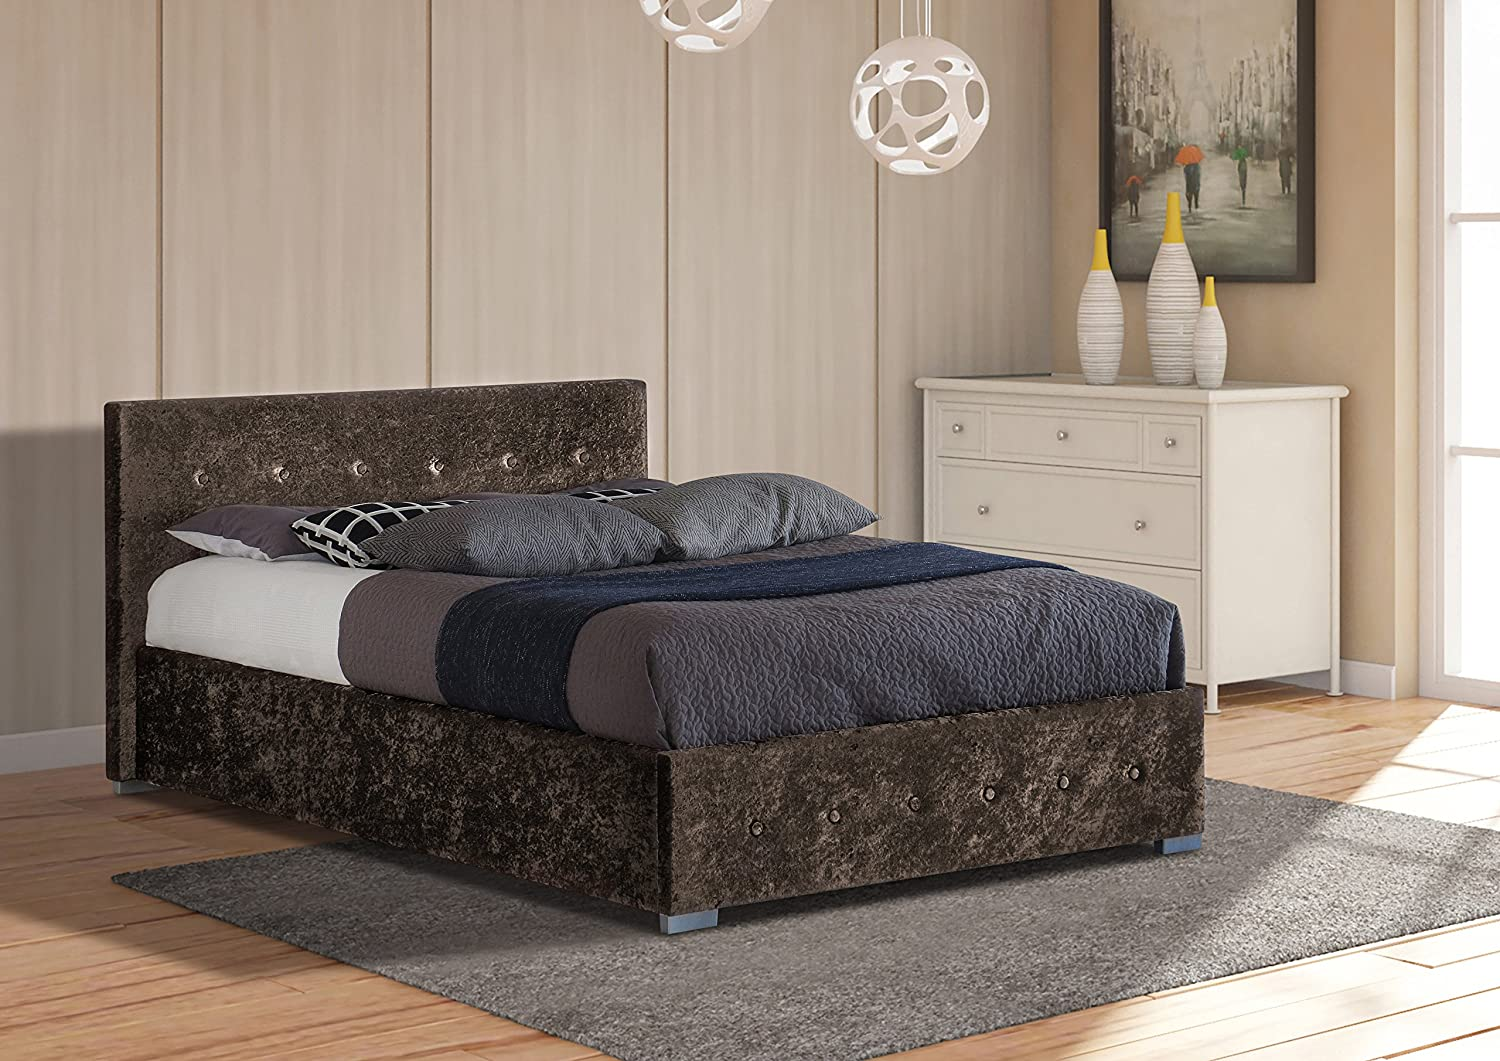 Comfy Living 4ft6 Double Crushed Velvet Storage Ottoman Bed Brown Amazon Co Uk Kitchen Home